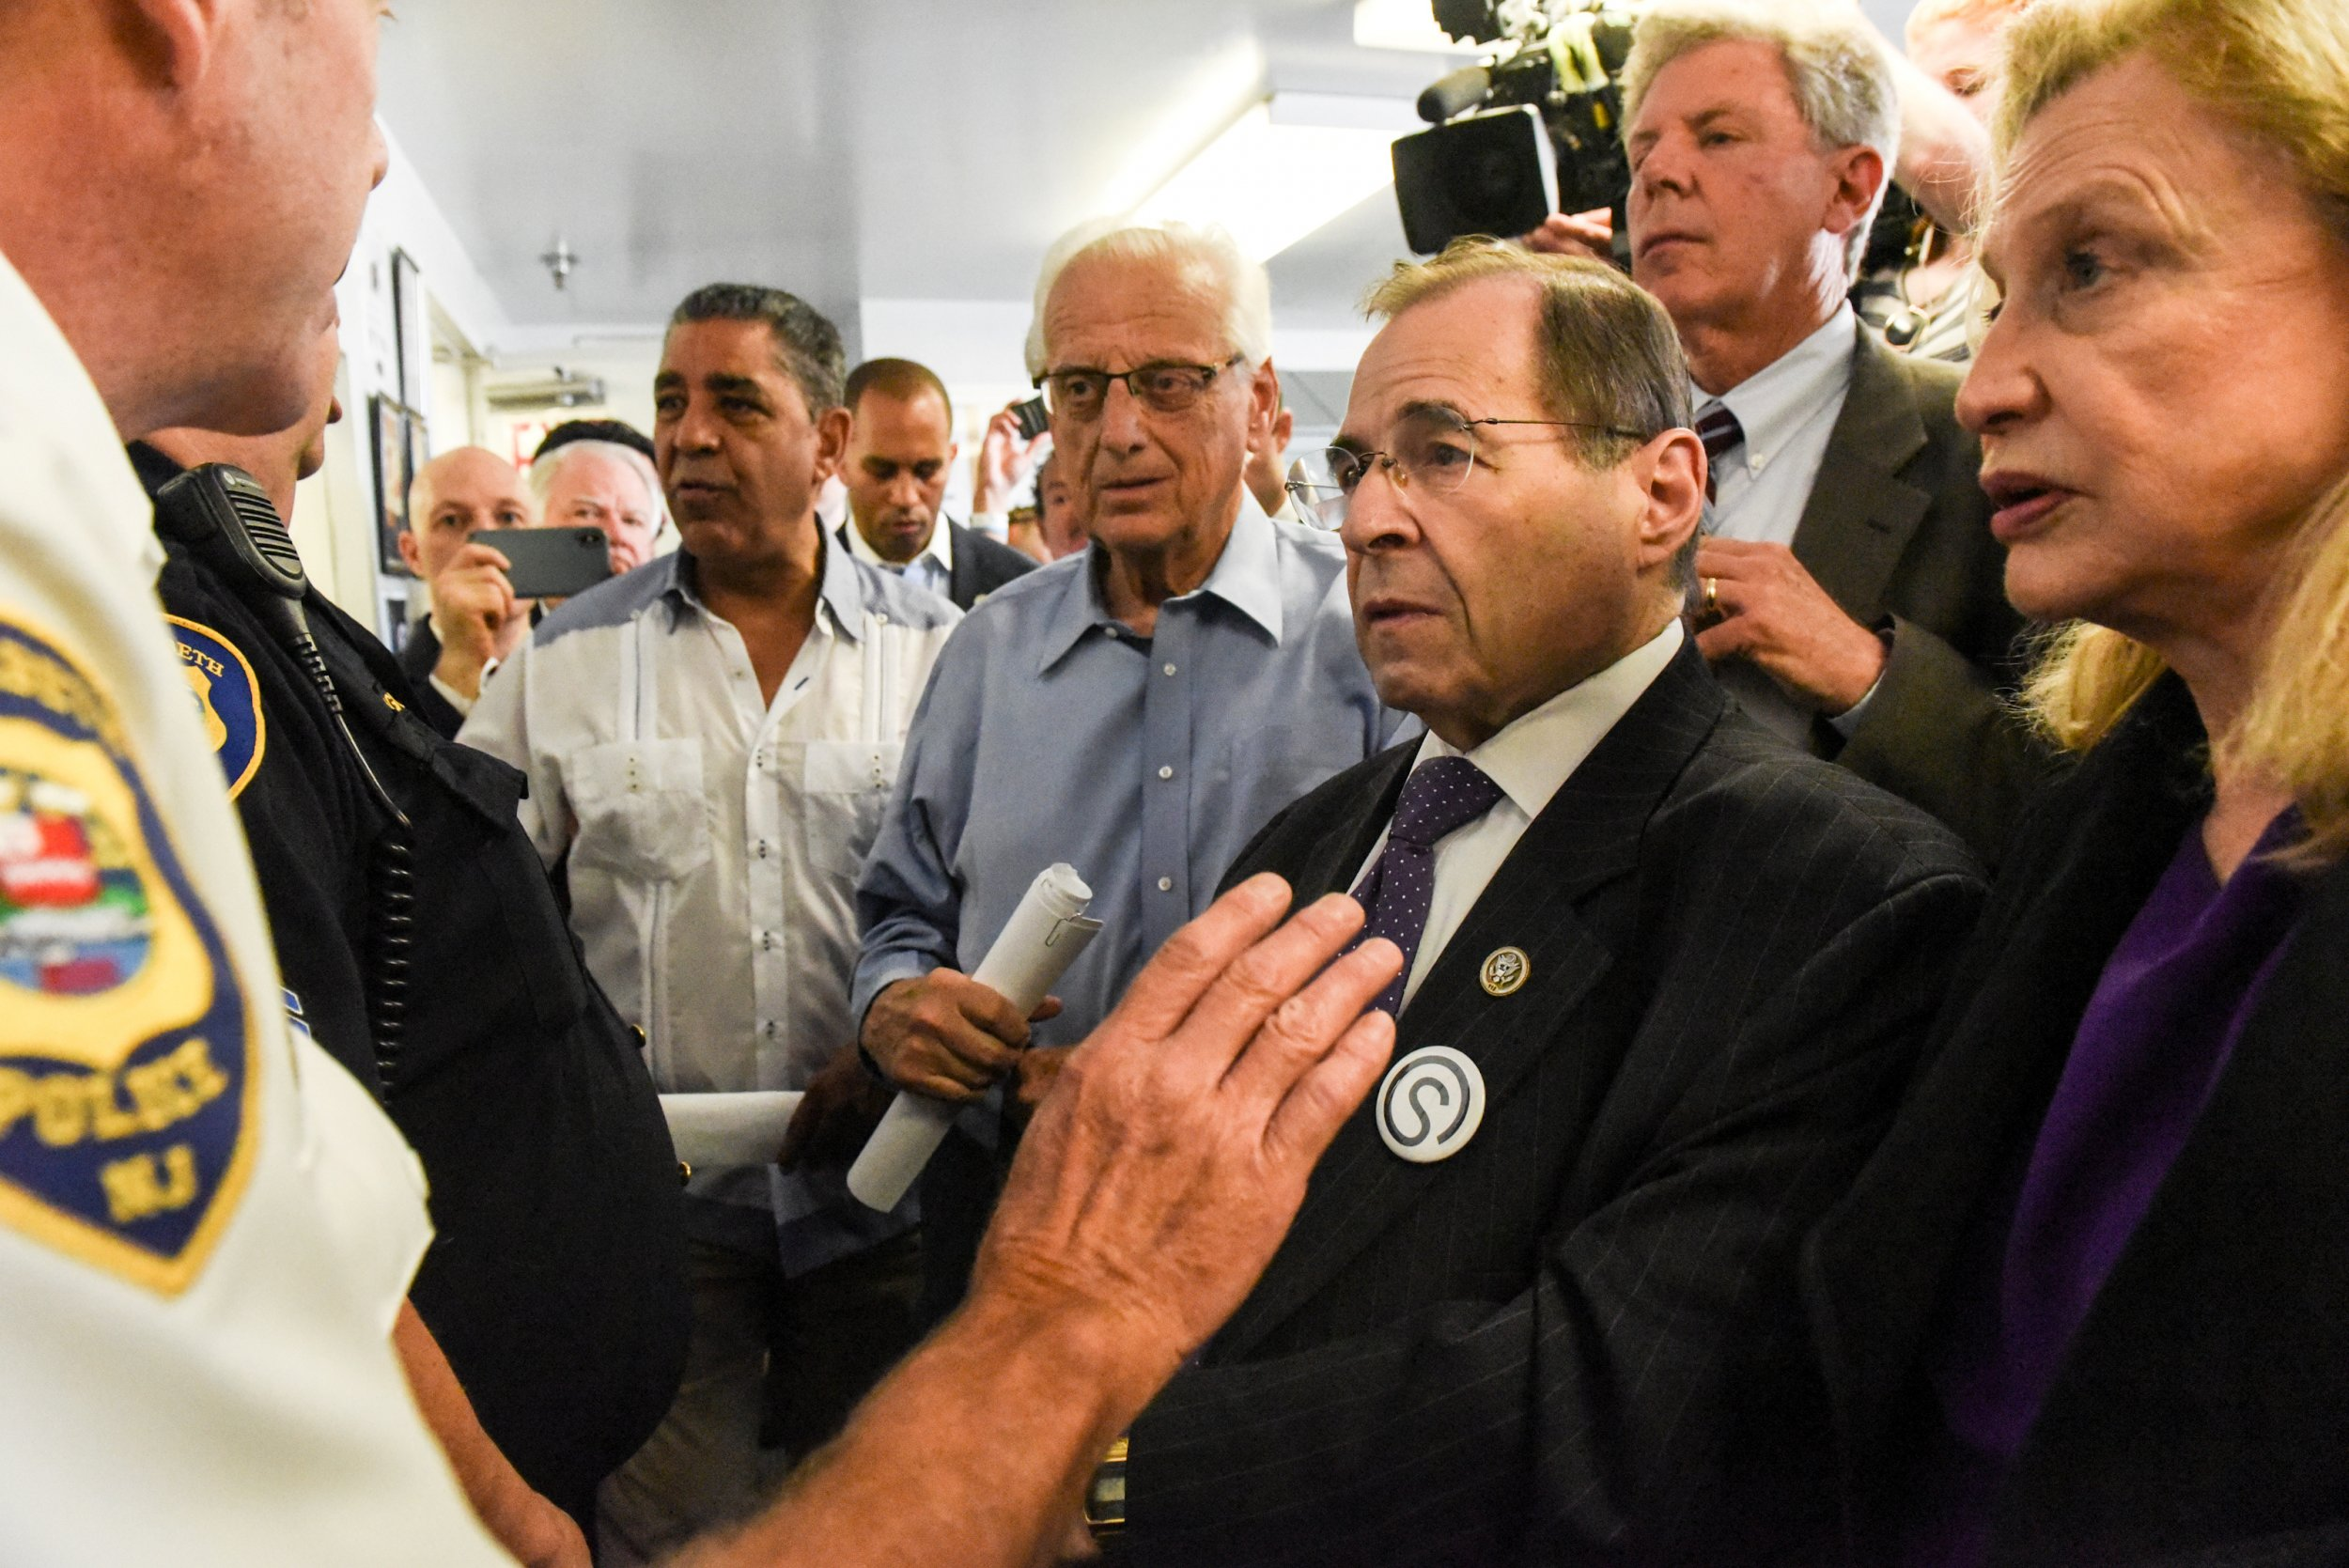 New York Representative Jerrold Nadler said Harvey Weinstein's accusers were first doubted just like Kavanaugh's